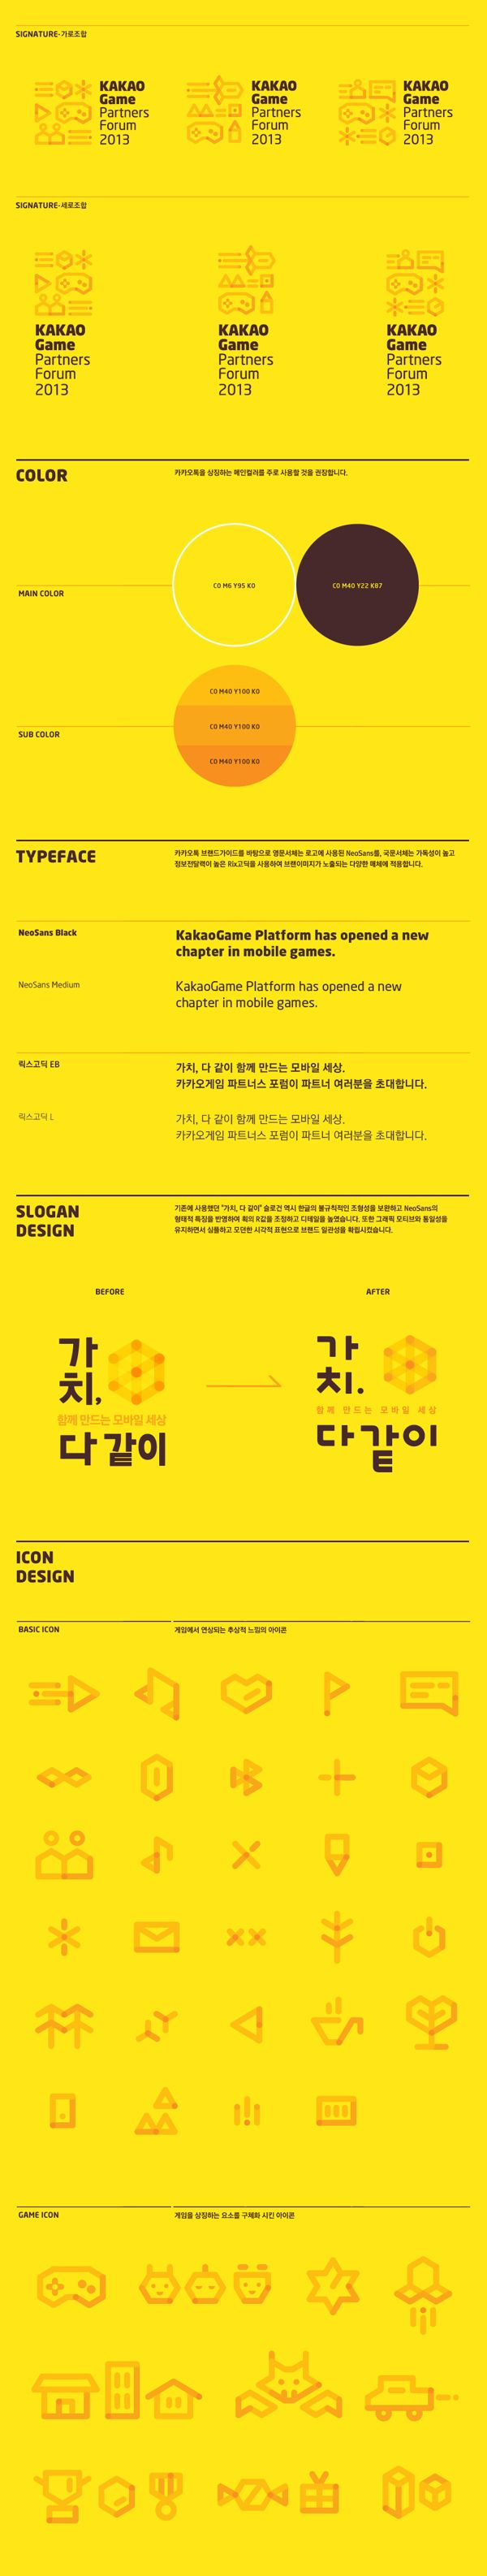 Plus X – KAKAO Game Partners Forum Brand eXperience Design, via Behance